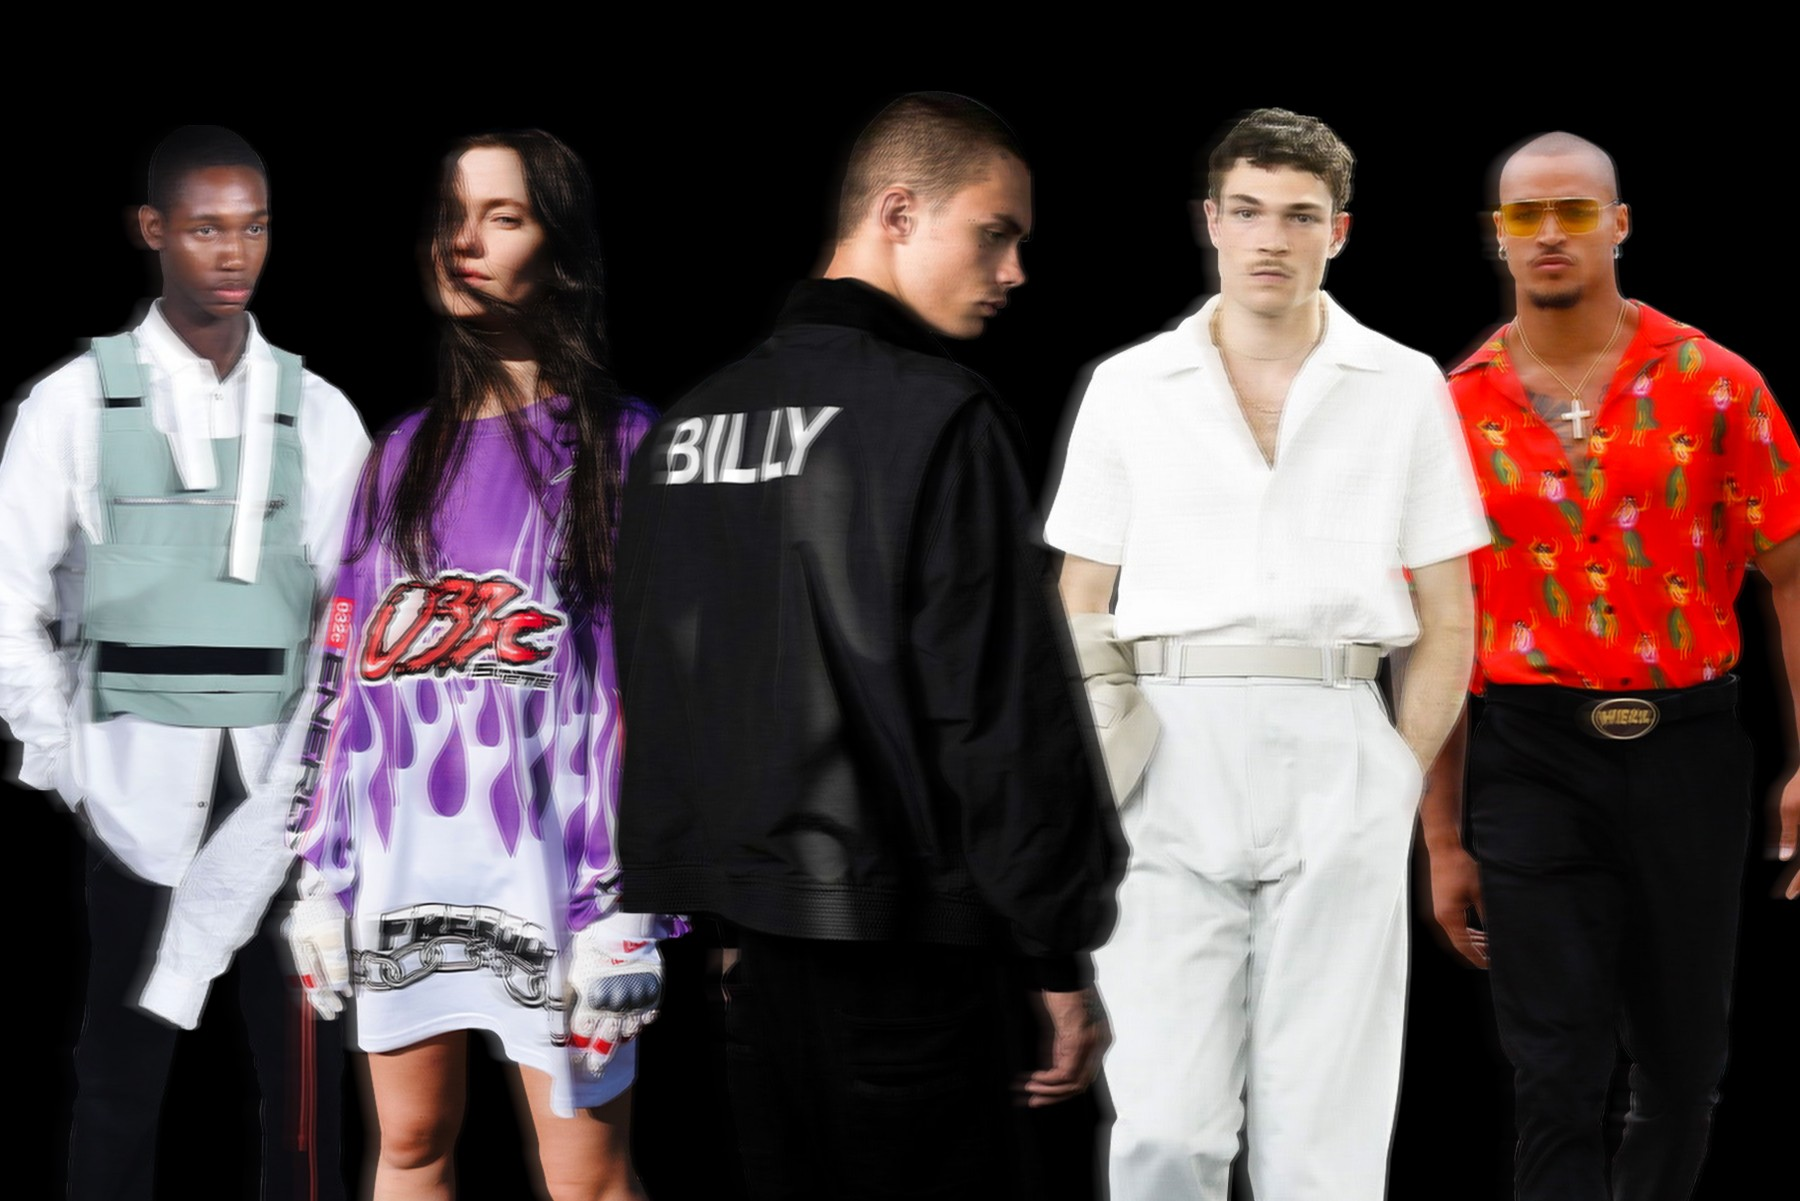 Top 10 Emerging Fashion Brands 2017 up and coming ten 032c  Advisory Board Crystals BILLY doublet readymade GmbH no vacancy inn  HELIOT EMIL some ware sss world corp new